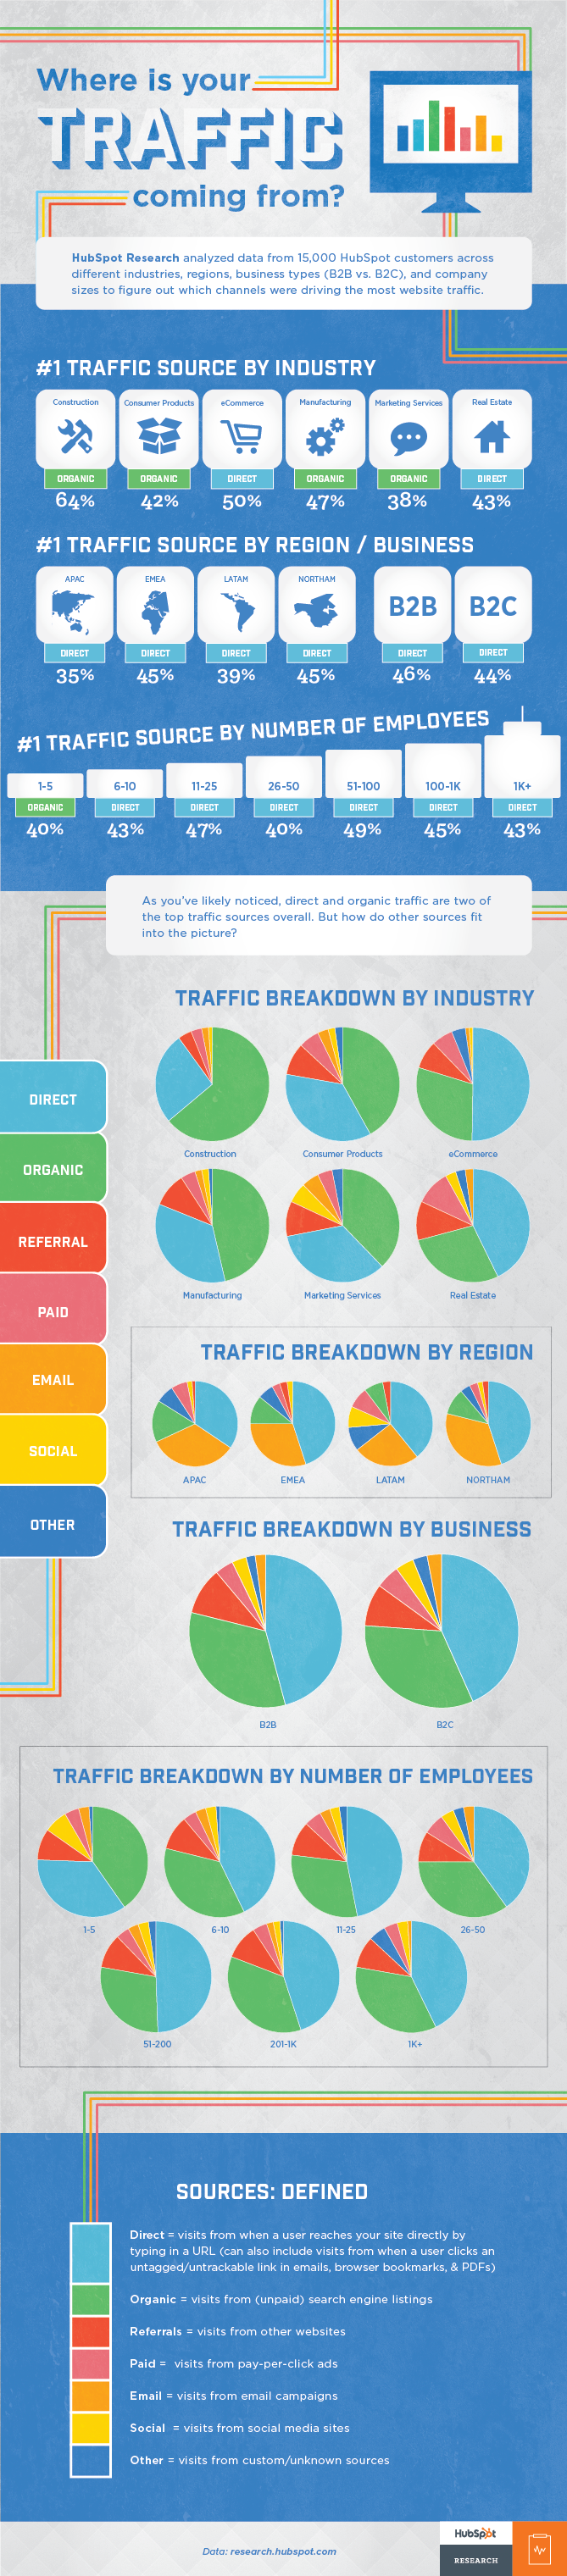 where-is-your-traffic-coming-from-infographic.png